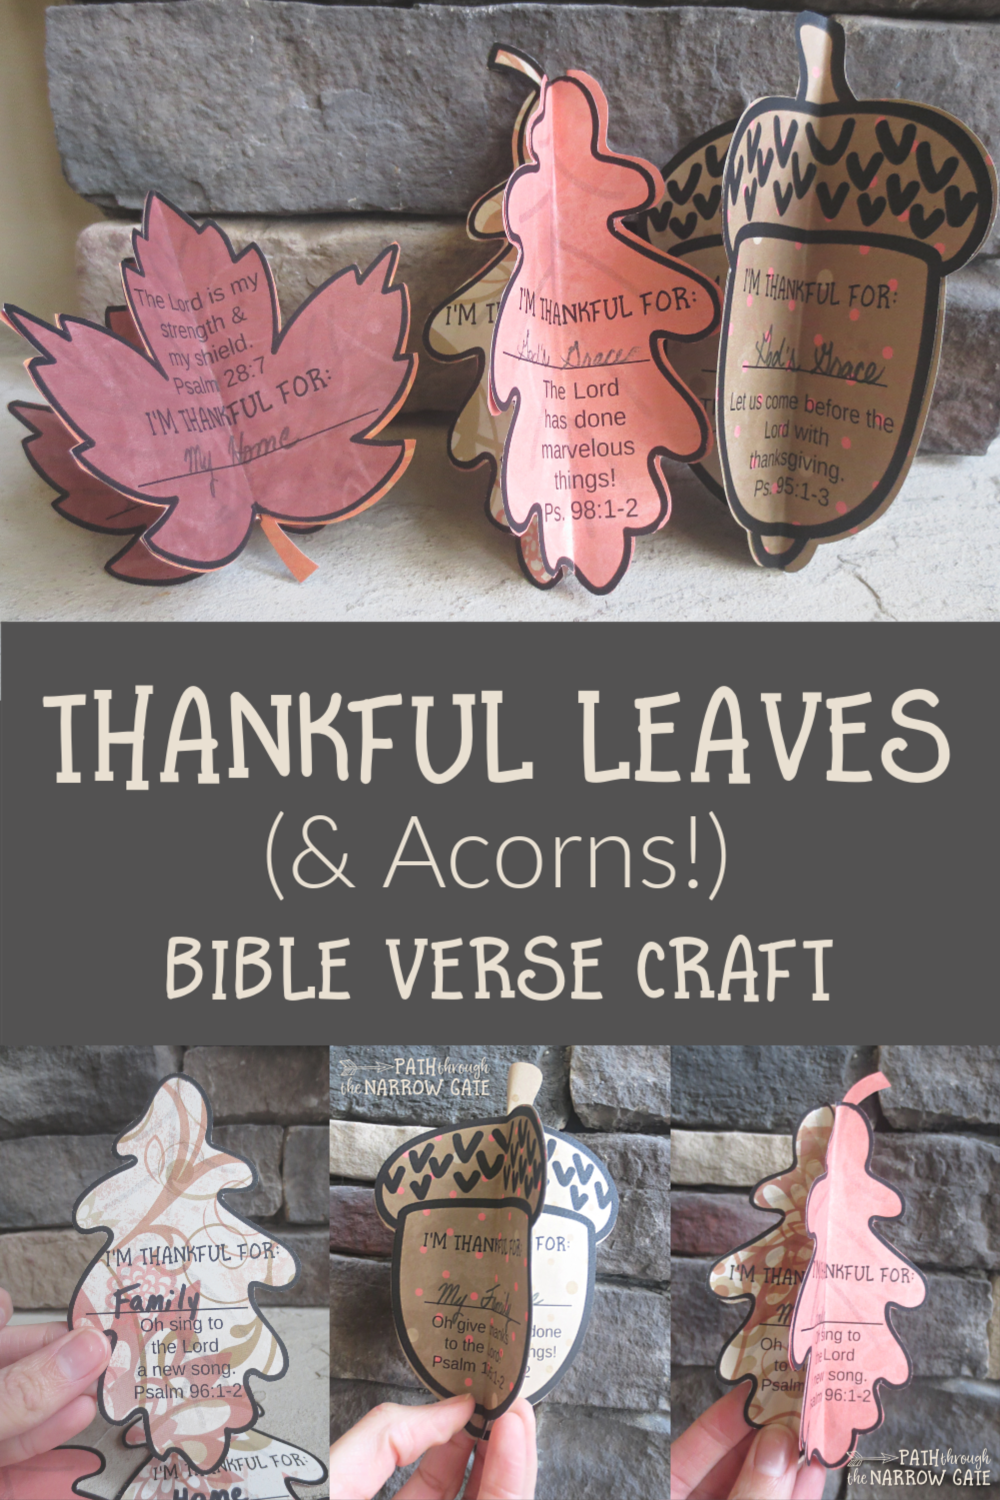 Looking for a simple way to encourage your kids to be thankful? Try making this cute Thankful Leaves Bible Verse Craft. Perfect for Sunday School or home!